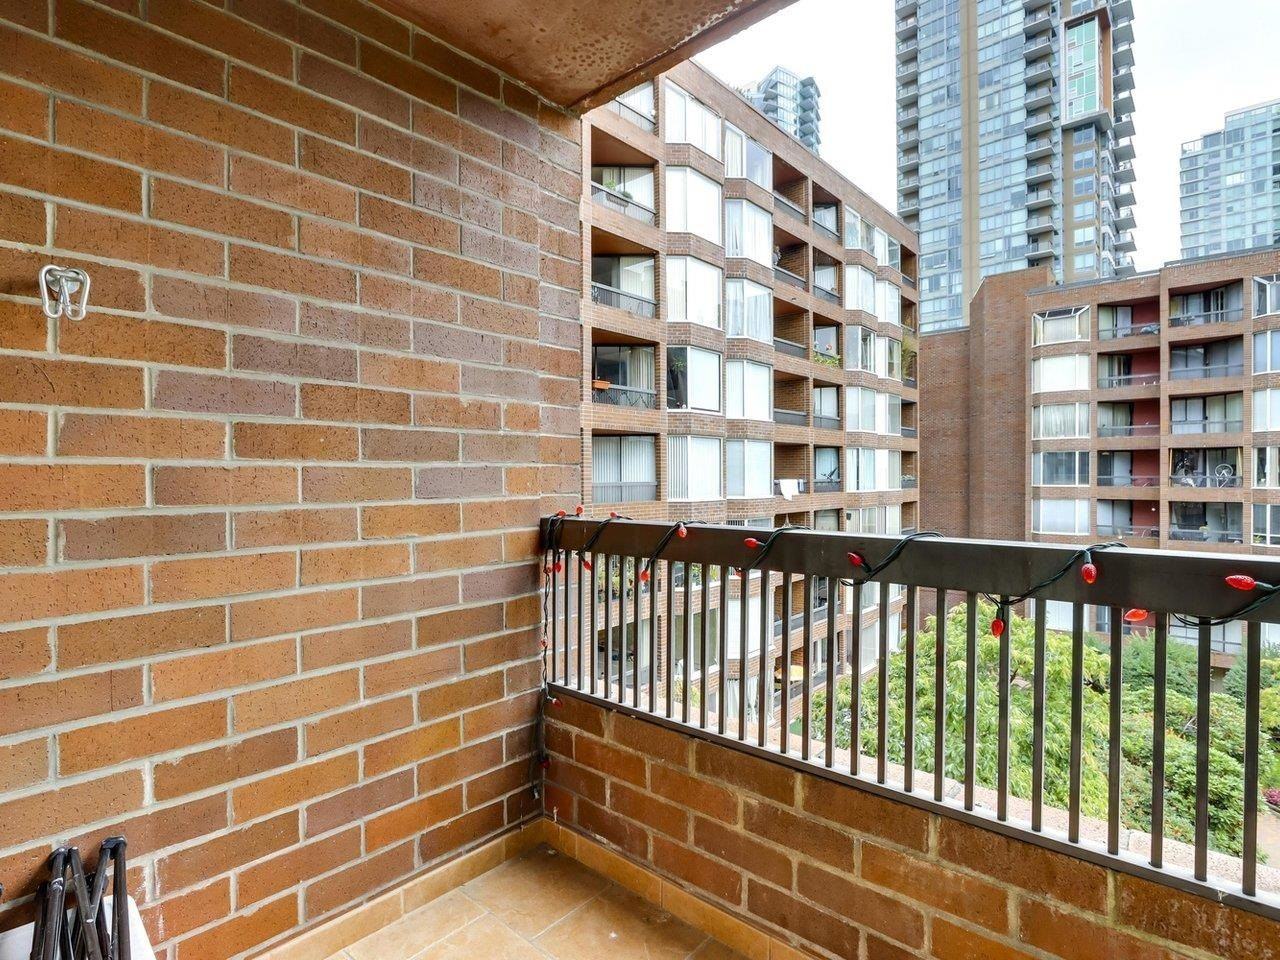 """Main Photo: 622 1330 BURRARD Street in Vancouver: Downtown VW Condo for sale in """"Anchor Point I"""" (Vancouver West)  : MLS®# R2618272"""